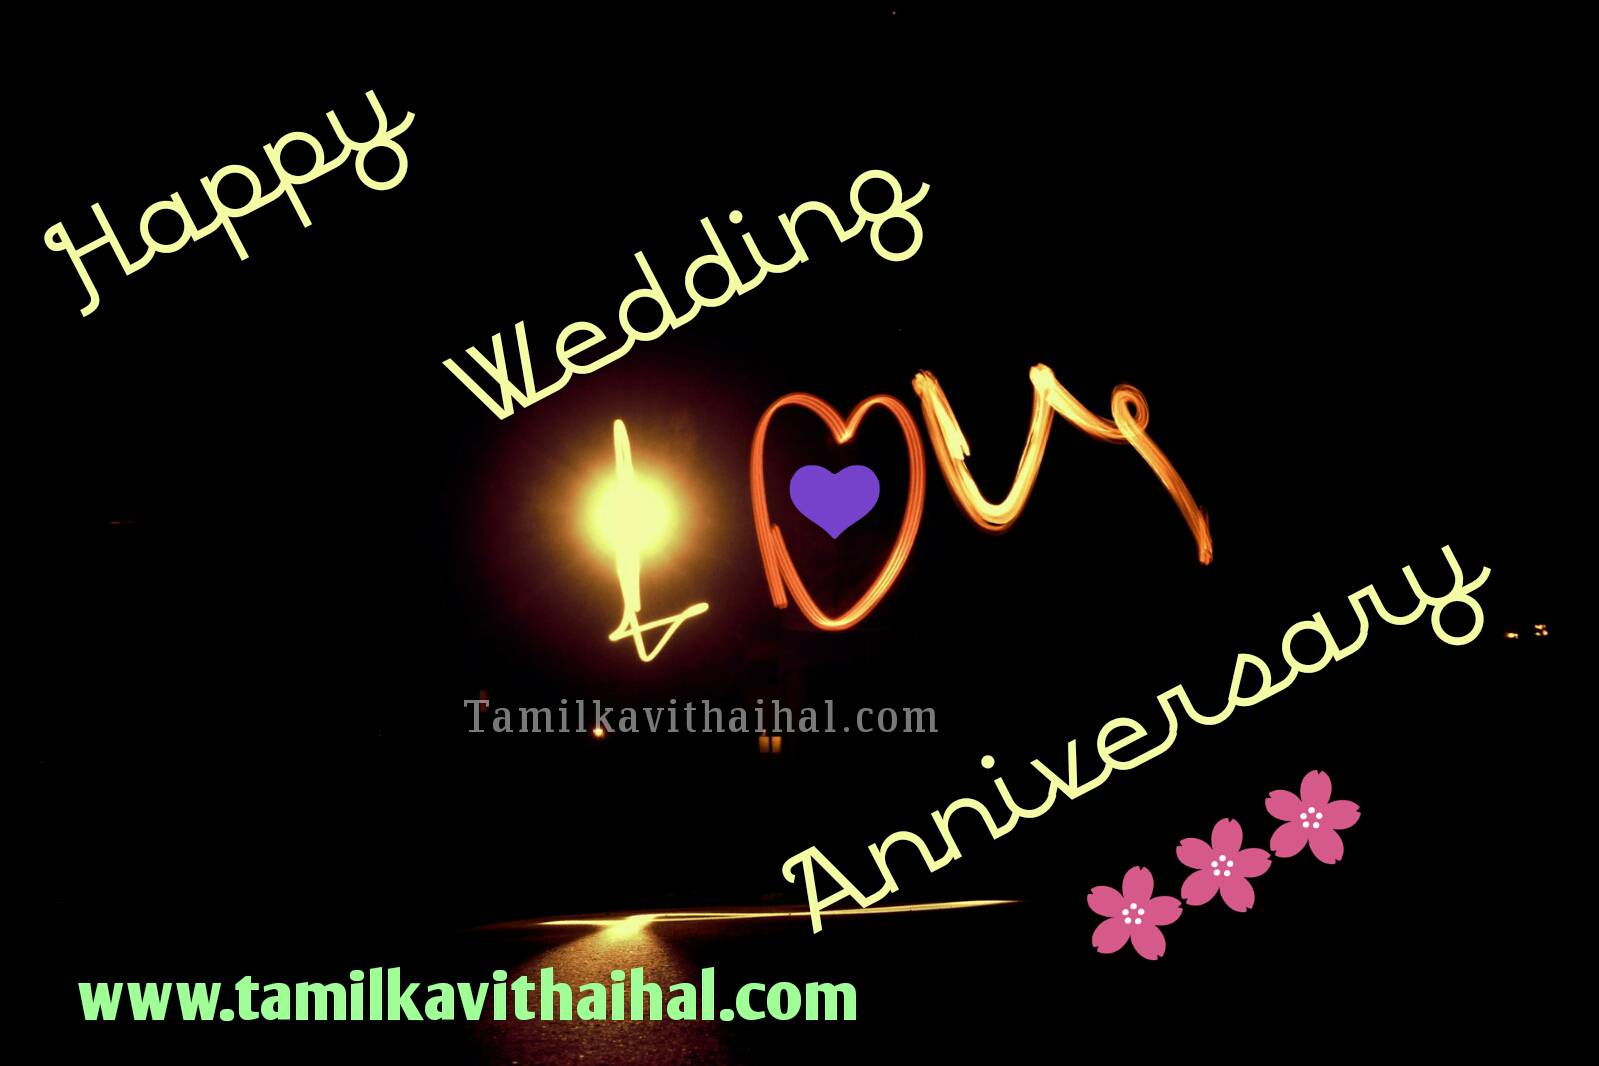 Thirumana Valthukkal Tamil Wishes Love Couple Wedding Anniversary